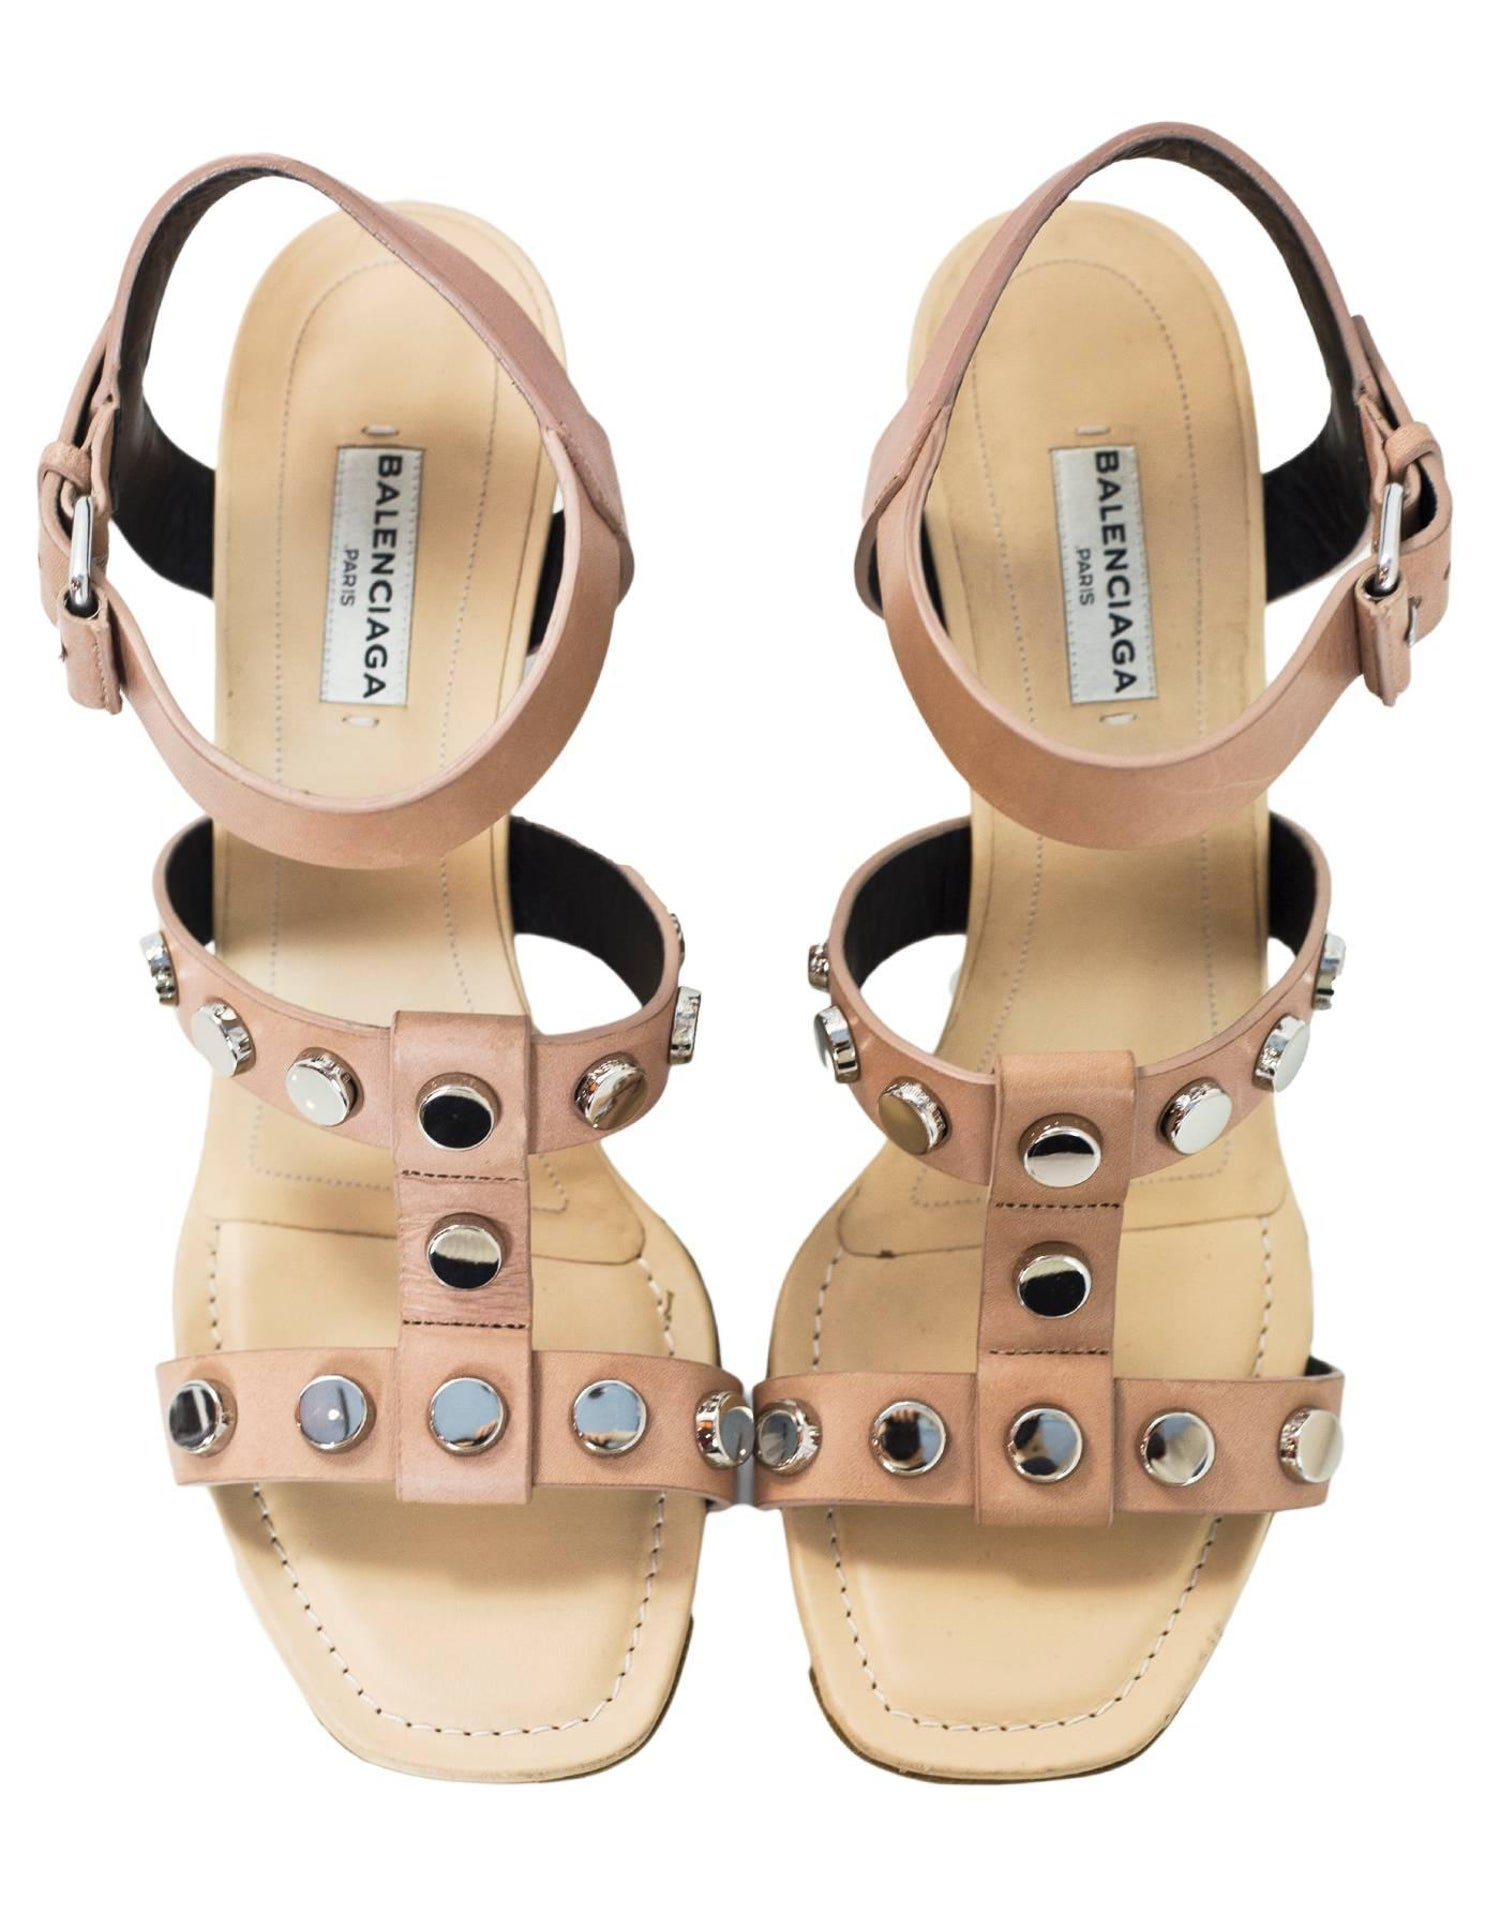 99c8652d0 Balenciaga Tan Leather Studded Wedge Sandals Sz 38.5 For Sale at 1stdibs